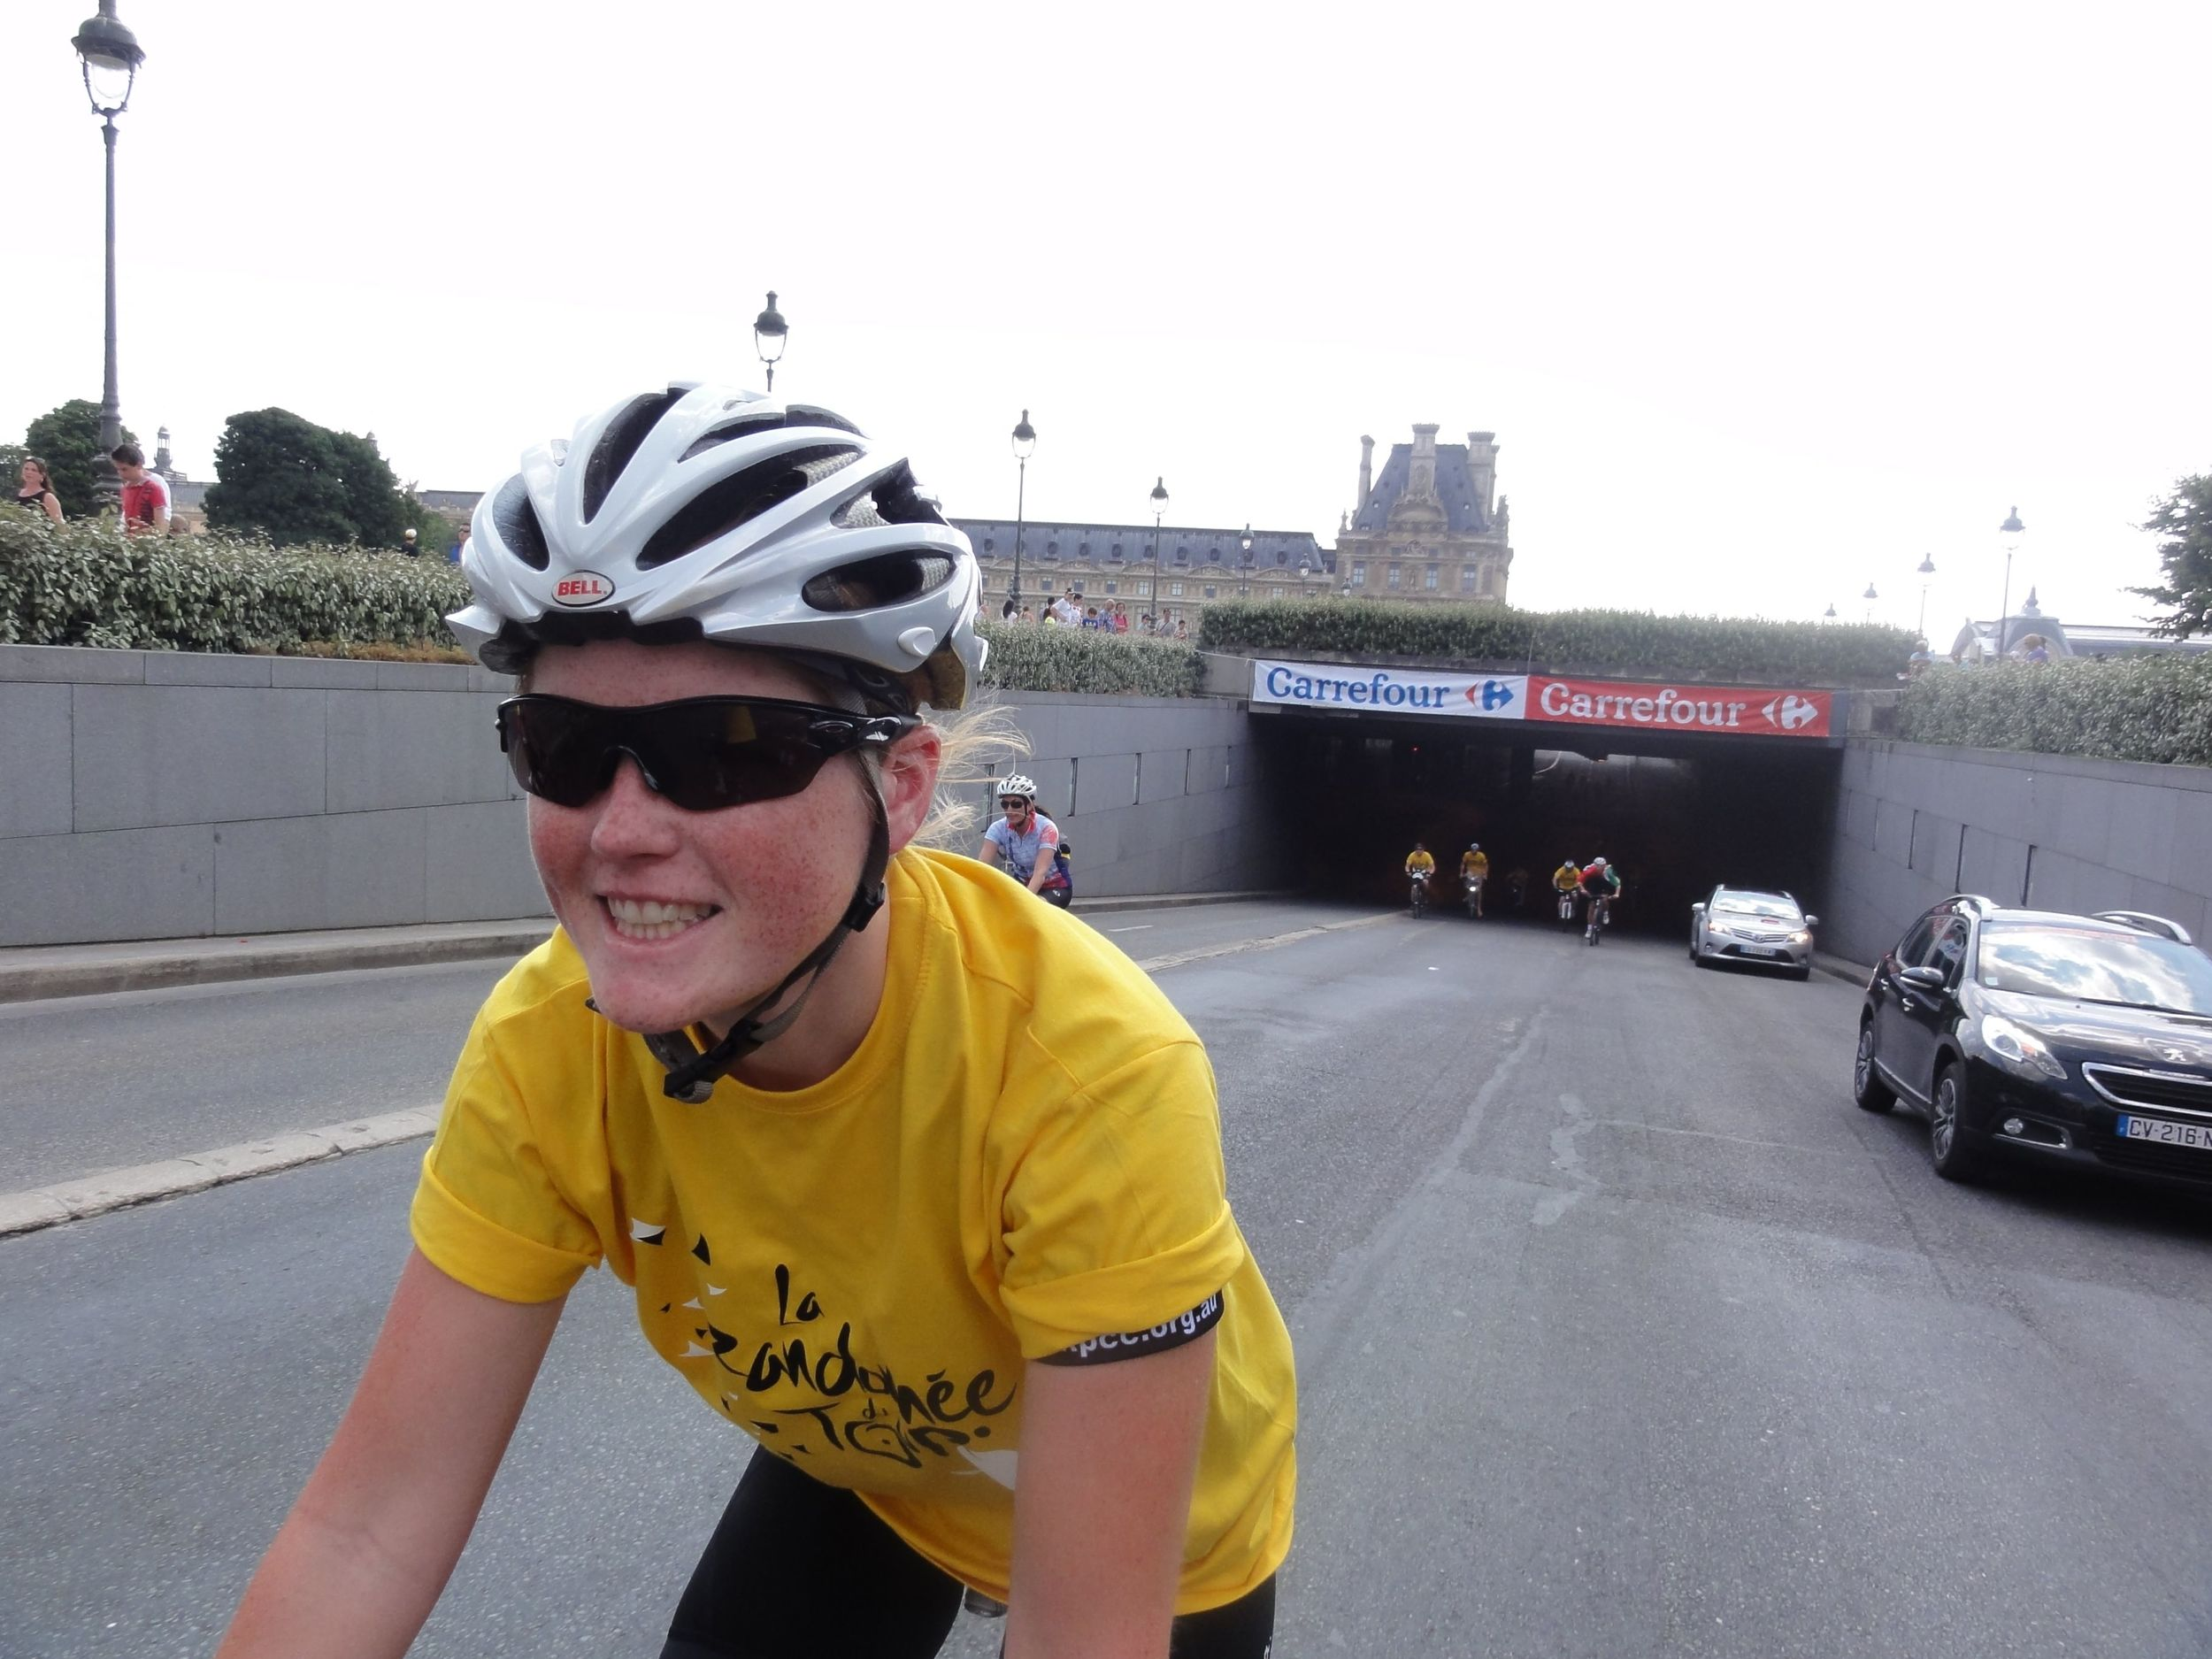 Claire coming out of the tunnel- all smiles. Just as I imagine Froome was when he came out of that tunnel for the final time this year!